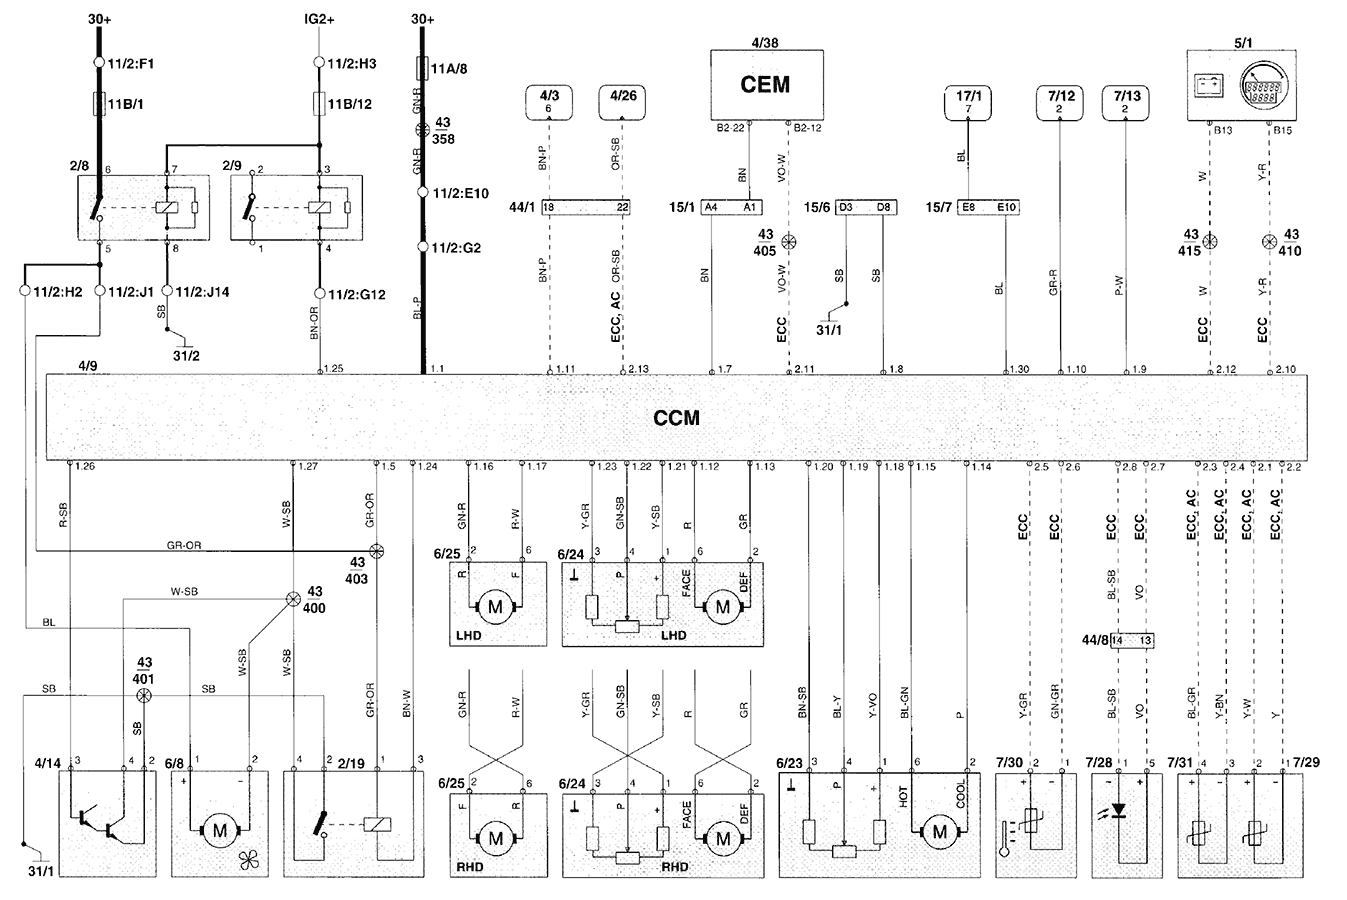 2009 12 09_122422_S40_wiring_blower_motor_resistor towbar wiring diagrams 3 phase panel wiring diagram ford f150 volvo v70 towbar wiring diagram at fashall.co